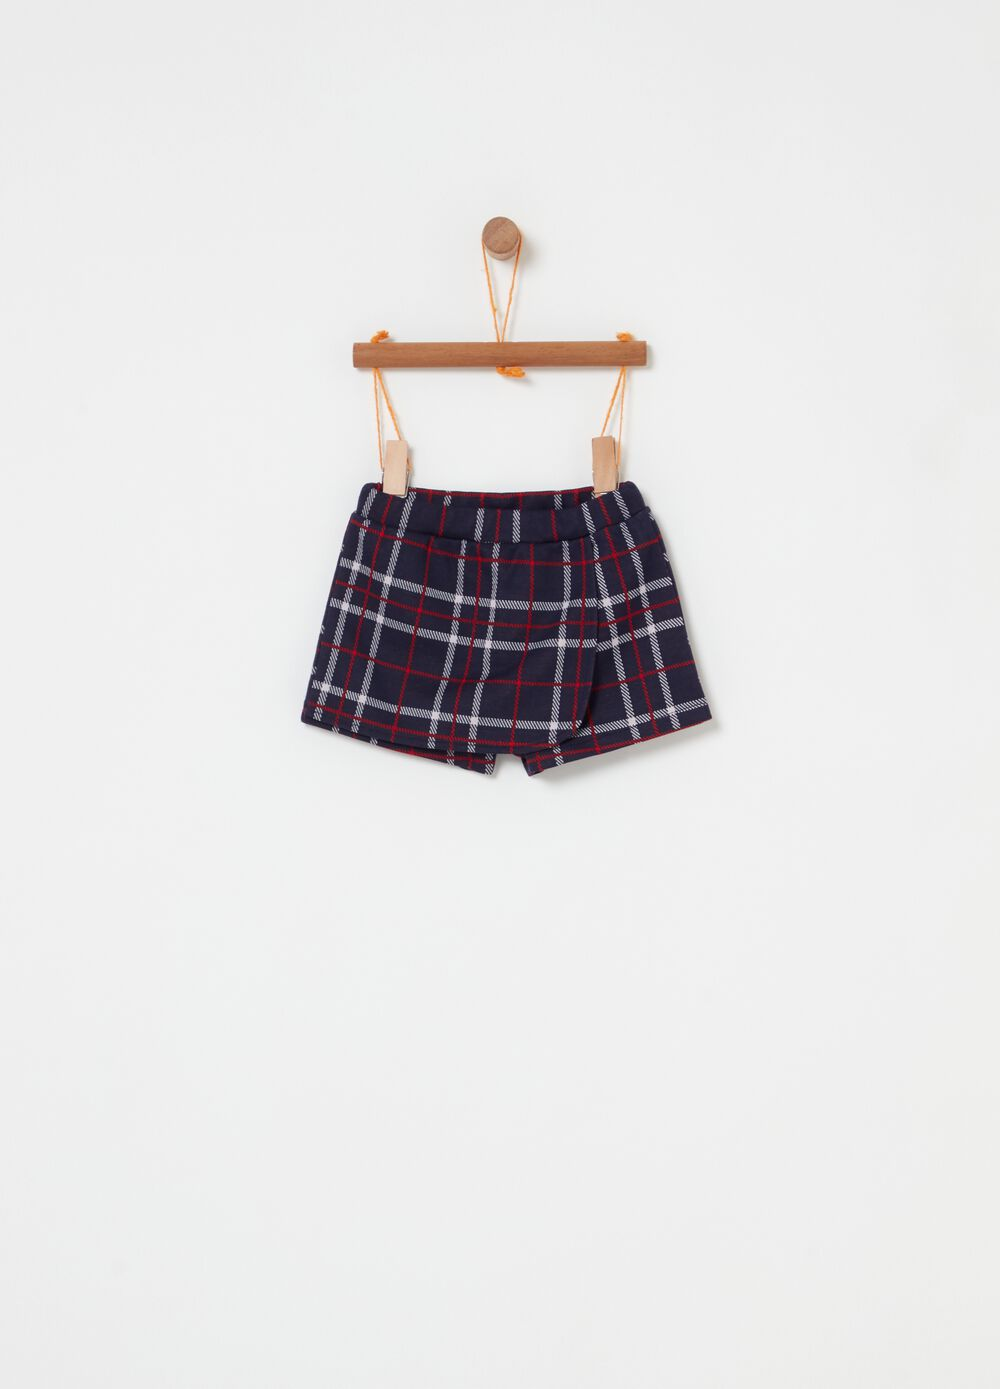 Wraparound skirt with check pattern